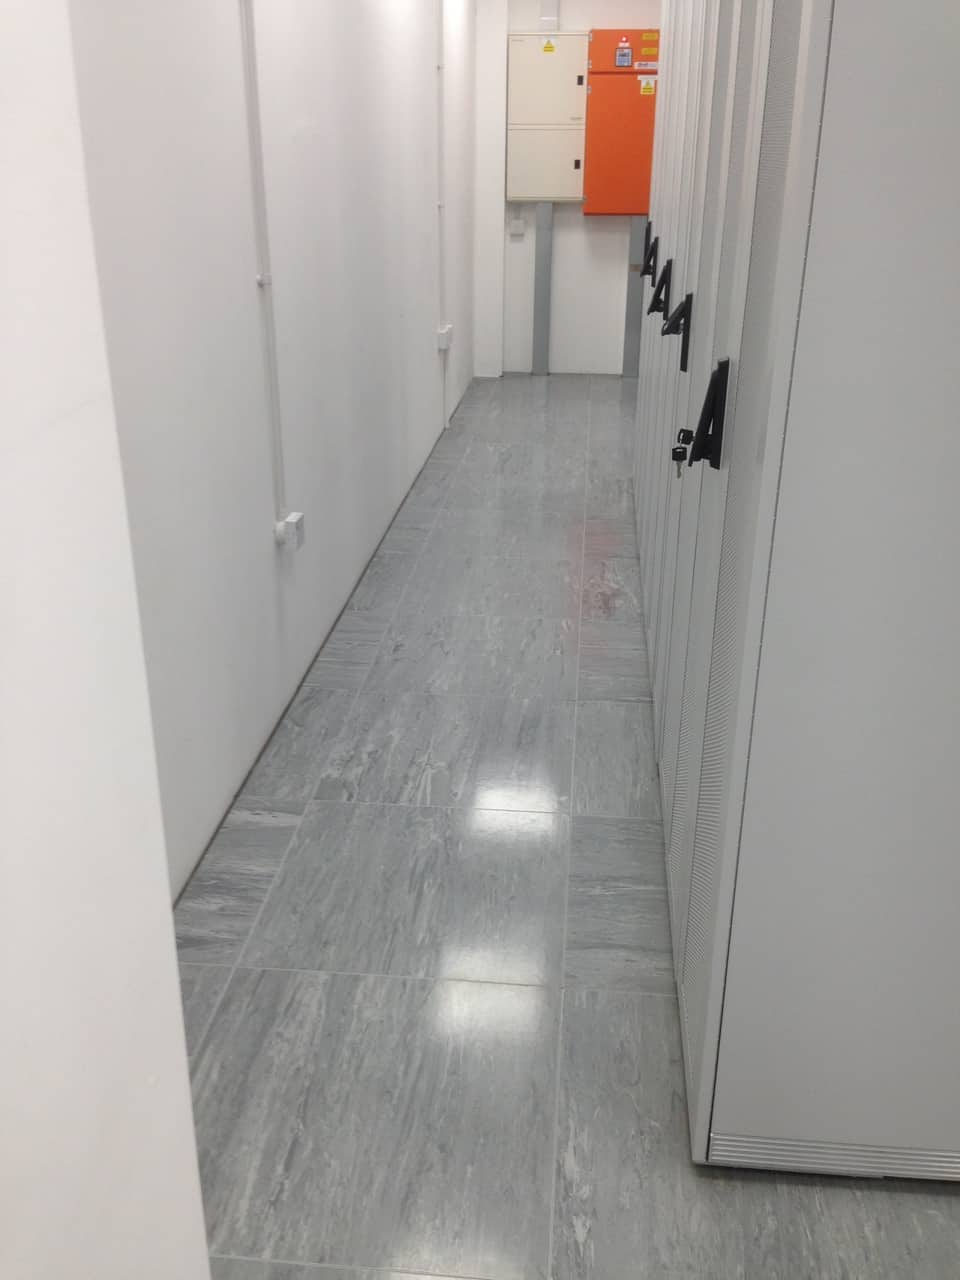 www.capital.uk.com - Data Centre Cleaning Service